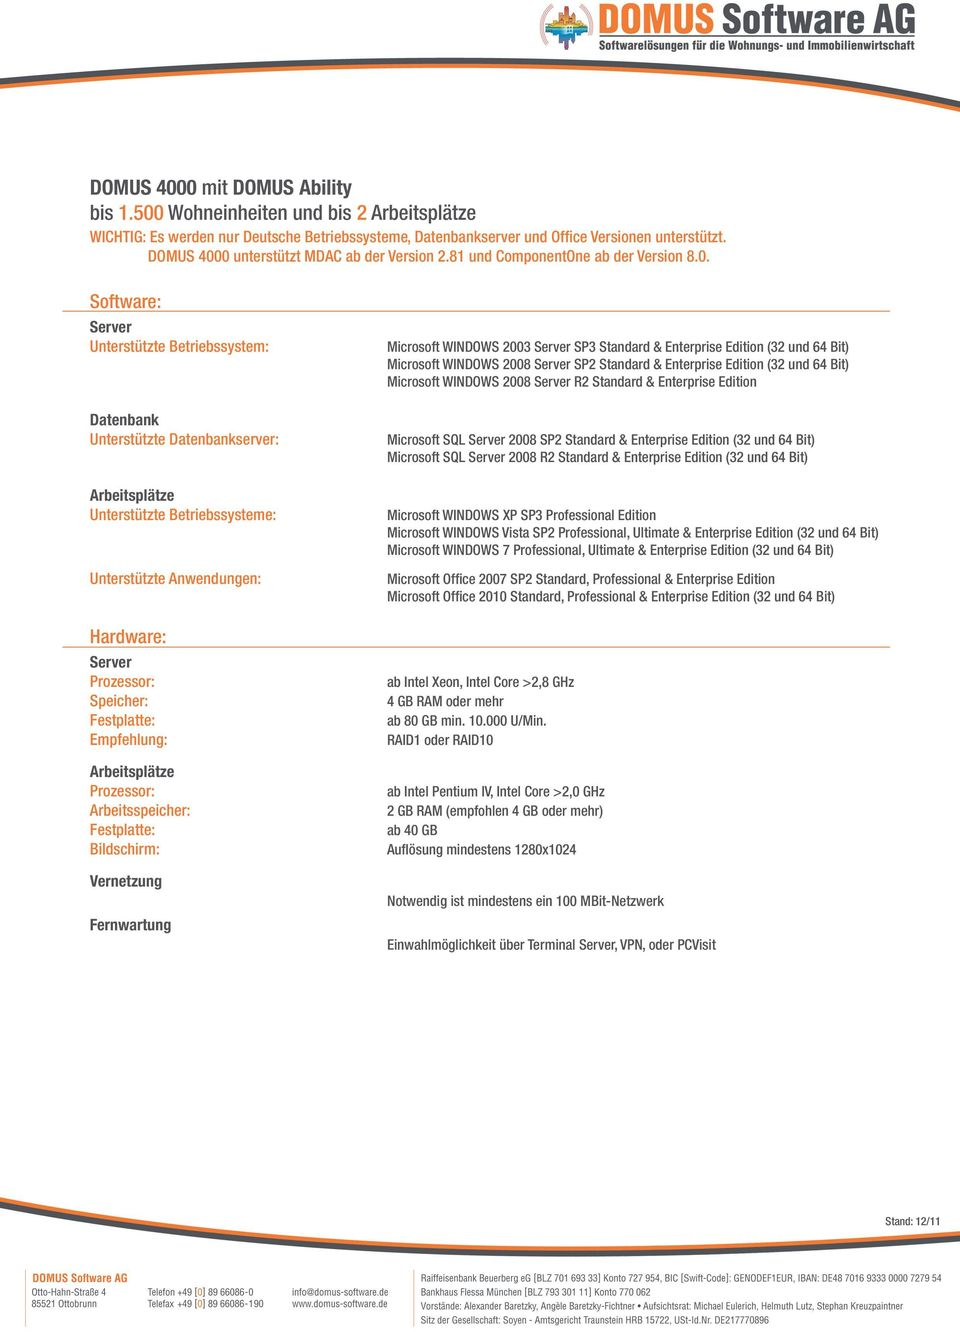 SP2 Standard & Enterprise Edition (32 und 64 Bit) Microsoft WINDOWS 2008 R2 Standard & Enterprise Edition Microsoft SQL 2008